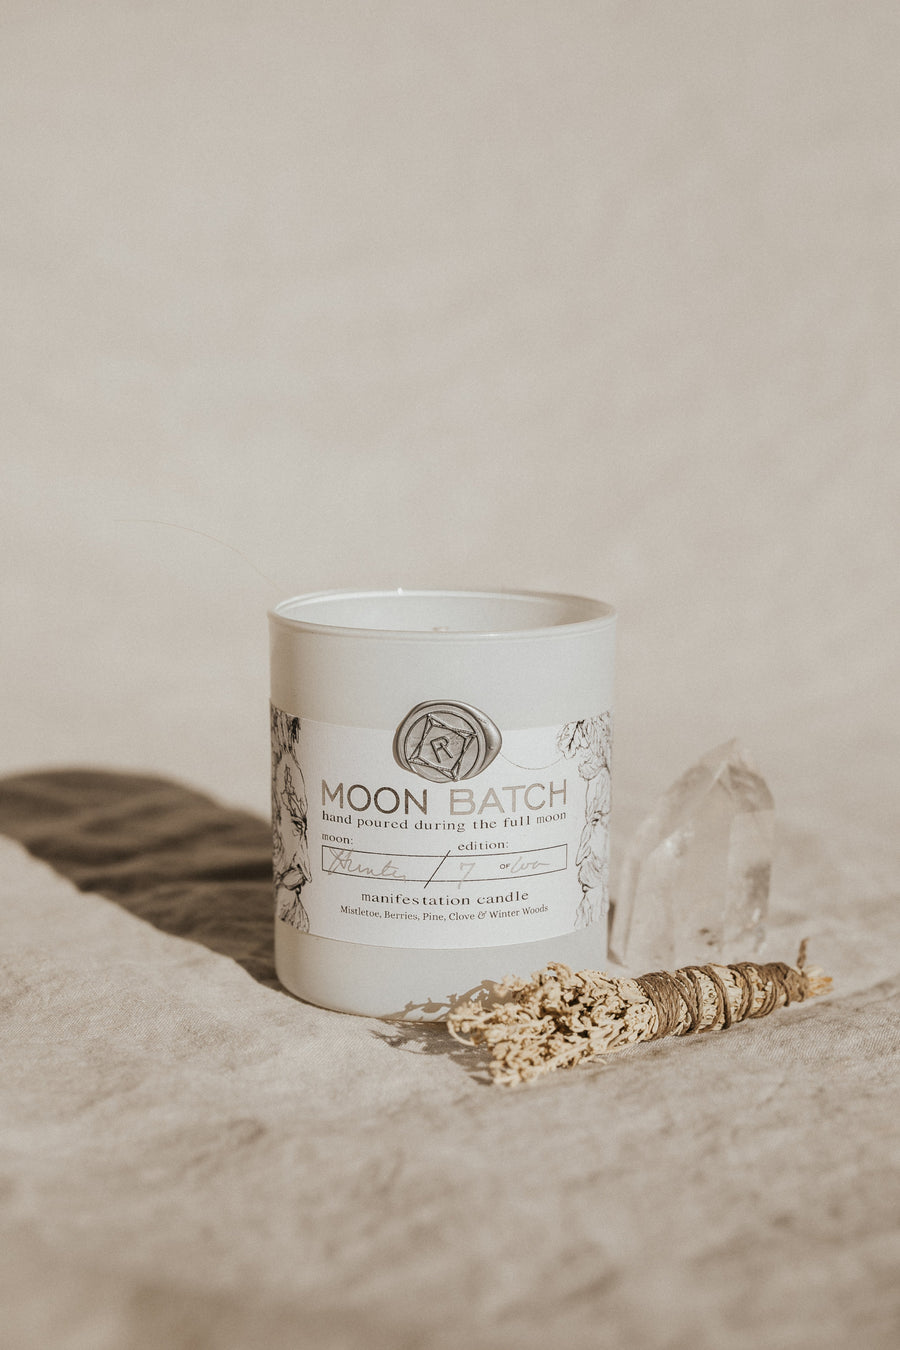 Ritual Provisions Objects White / FINAL SALE WINTER SOLSTICE Moon Batch Candles